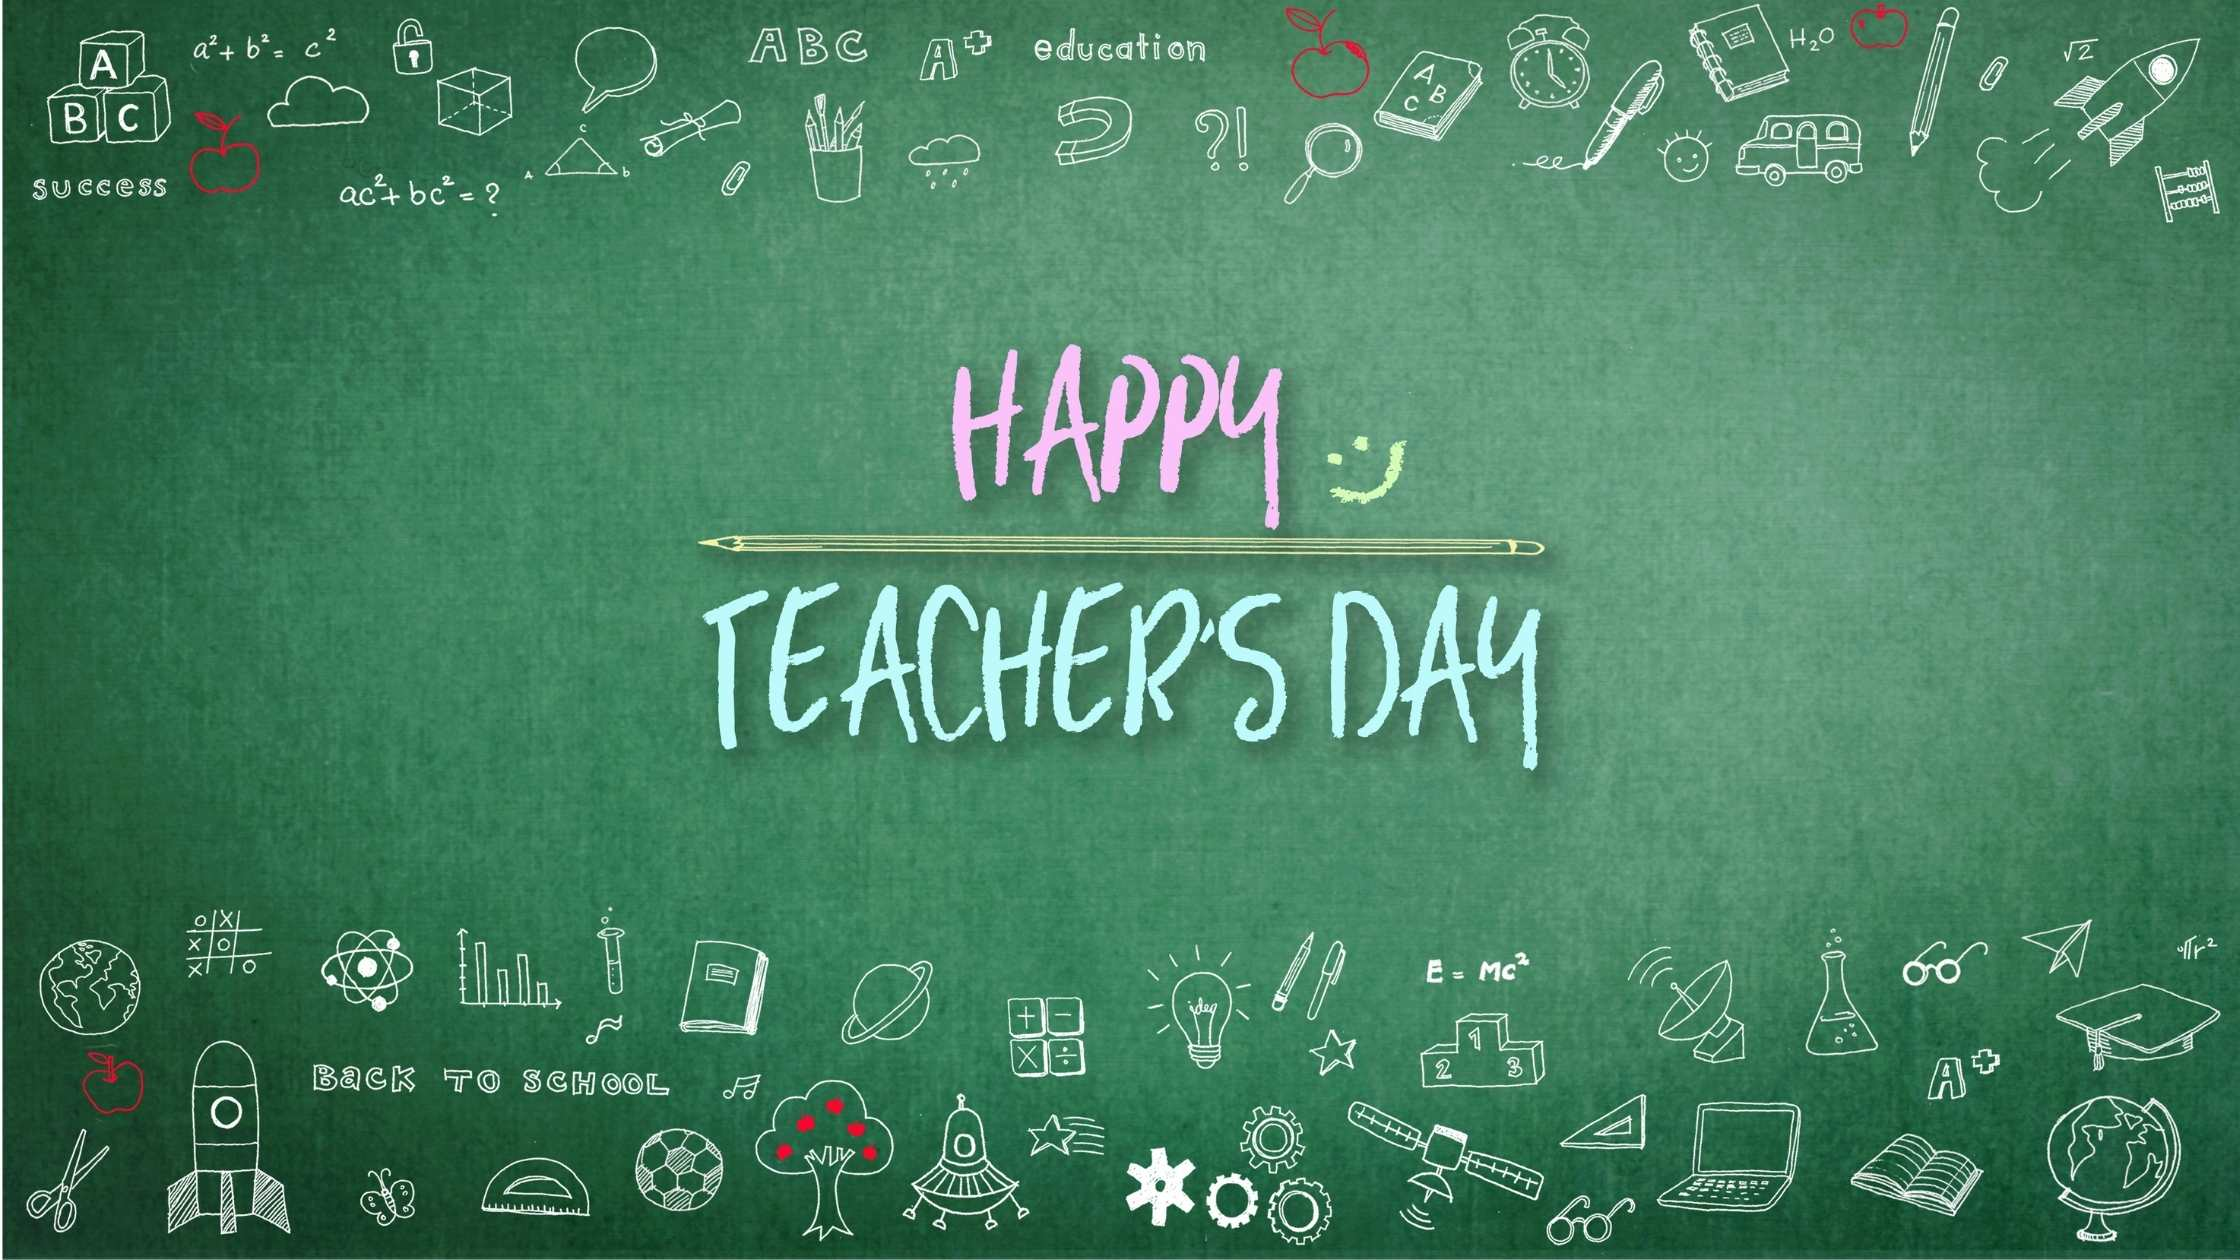 Teachers Day Wishes : Happy Teachers Day Wishes Quotes in Hindi: Teachers' Day Messages, Greetings Status. Happy Teachers Day 2020 Wishes Images